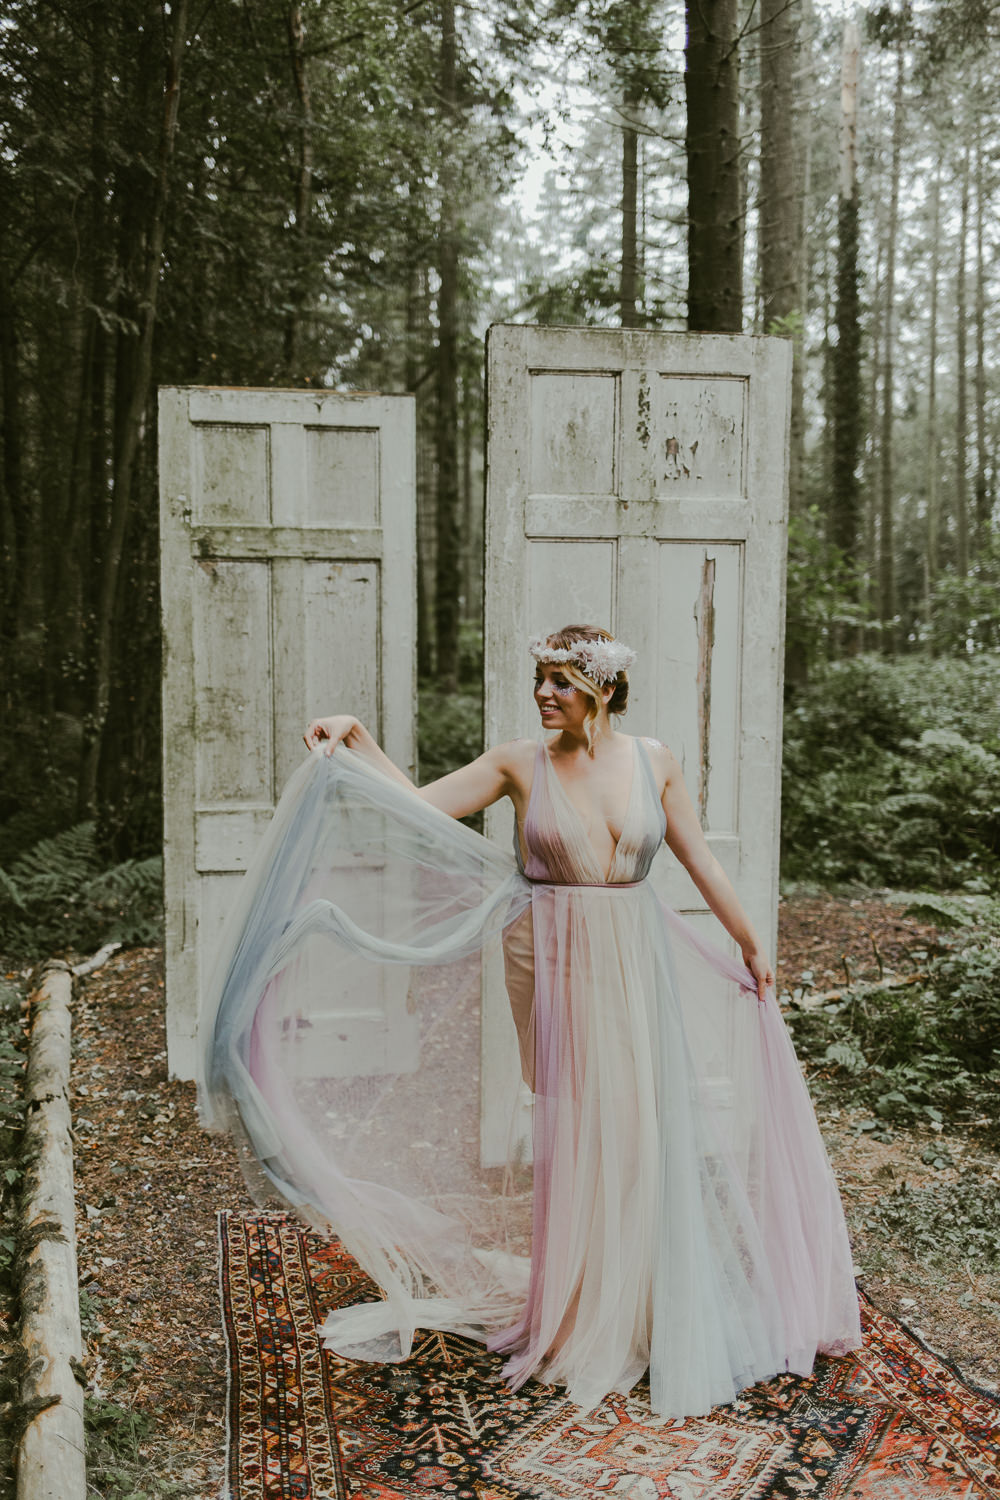 Bride Bridal Flower Crown Dress Gown Train Tulle Rainbow Dreamy Woodland Wedding Ideas Jasmine Andrews Photography